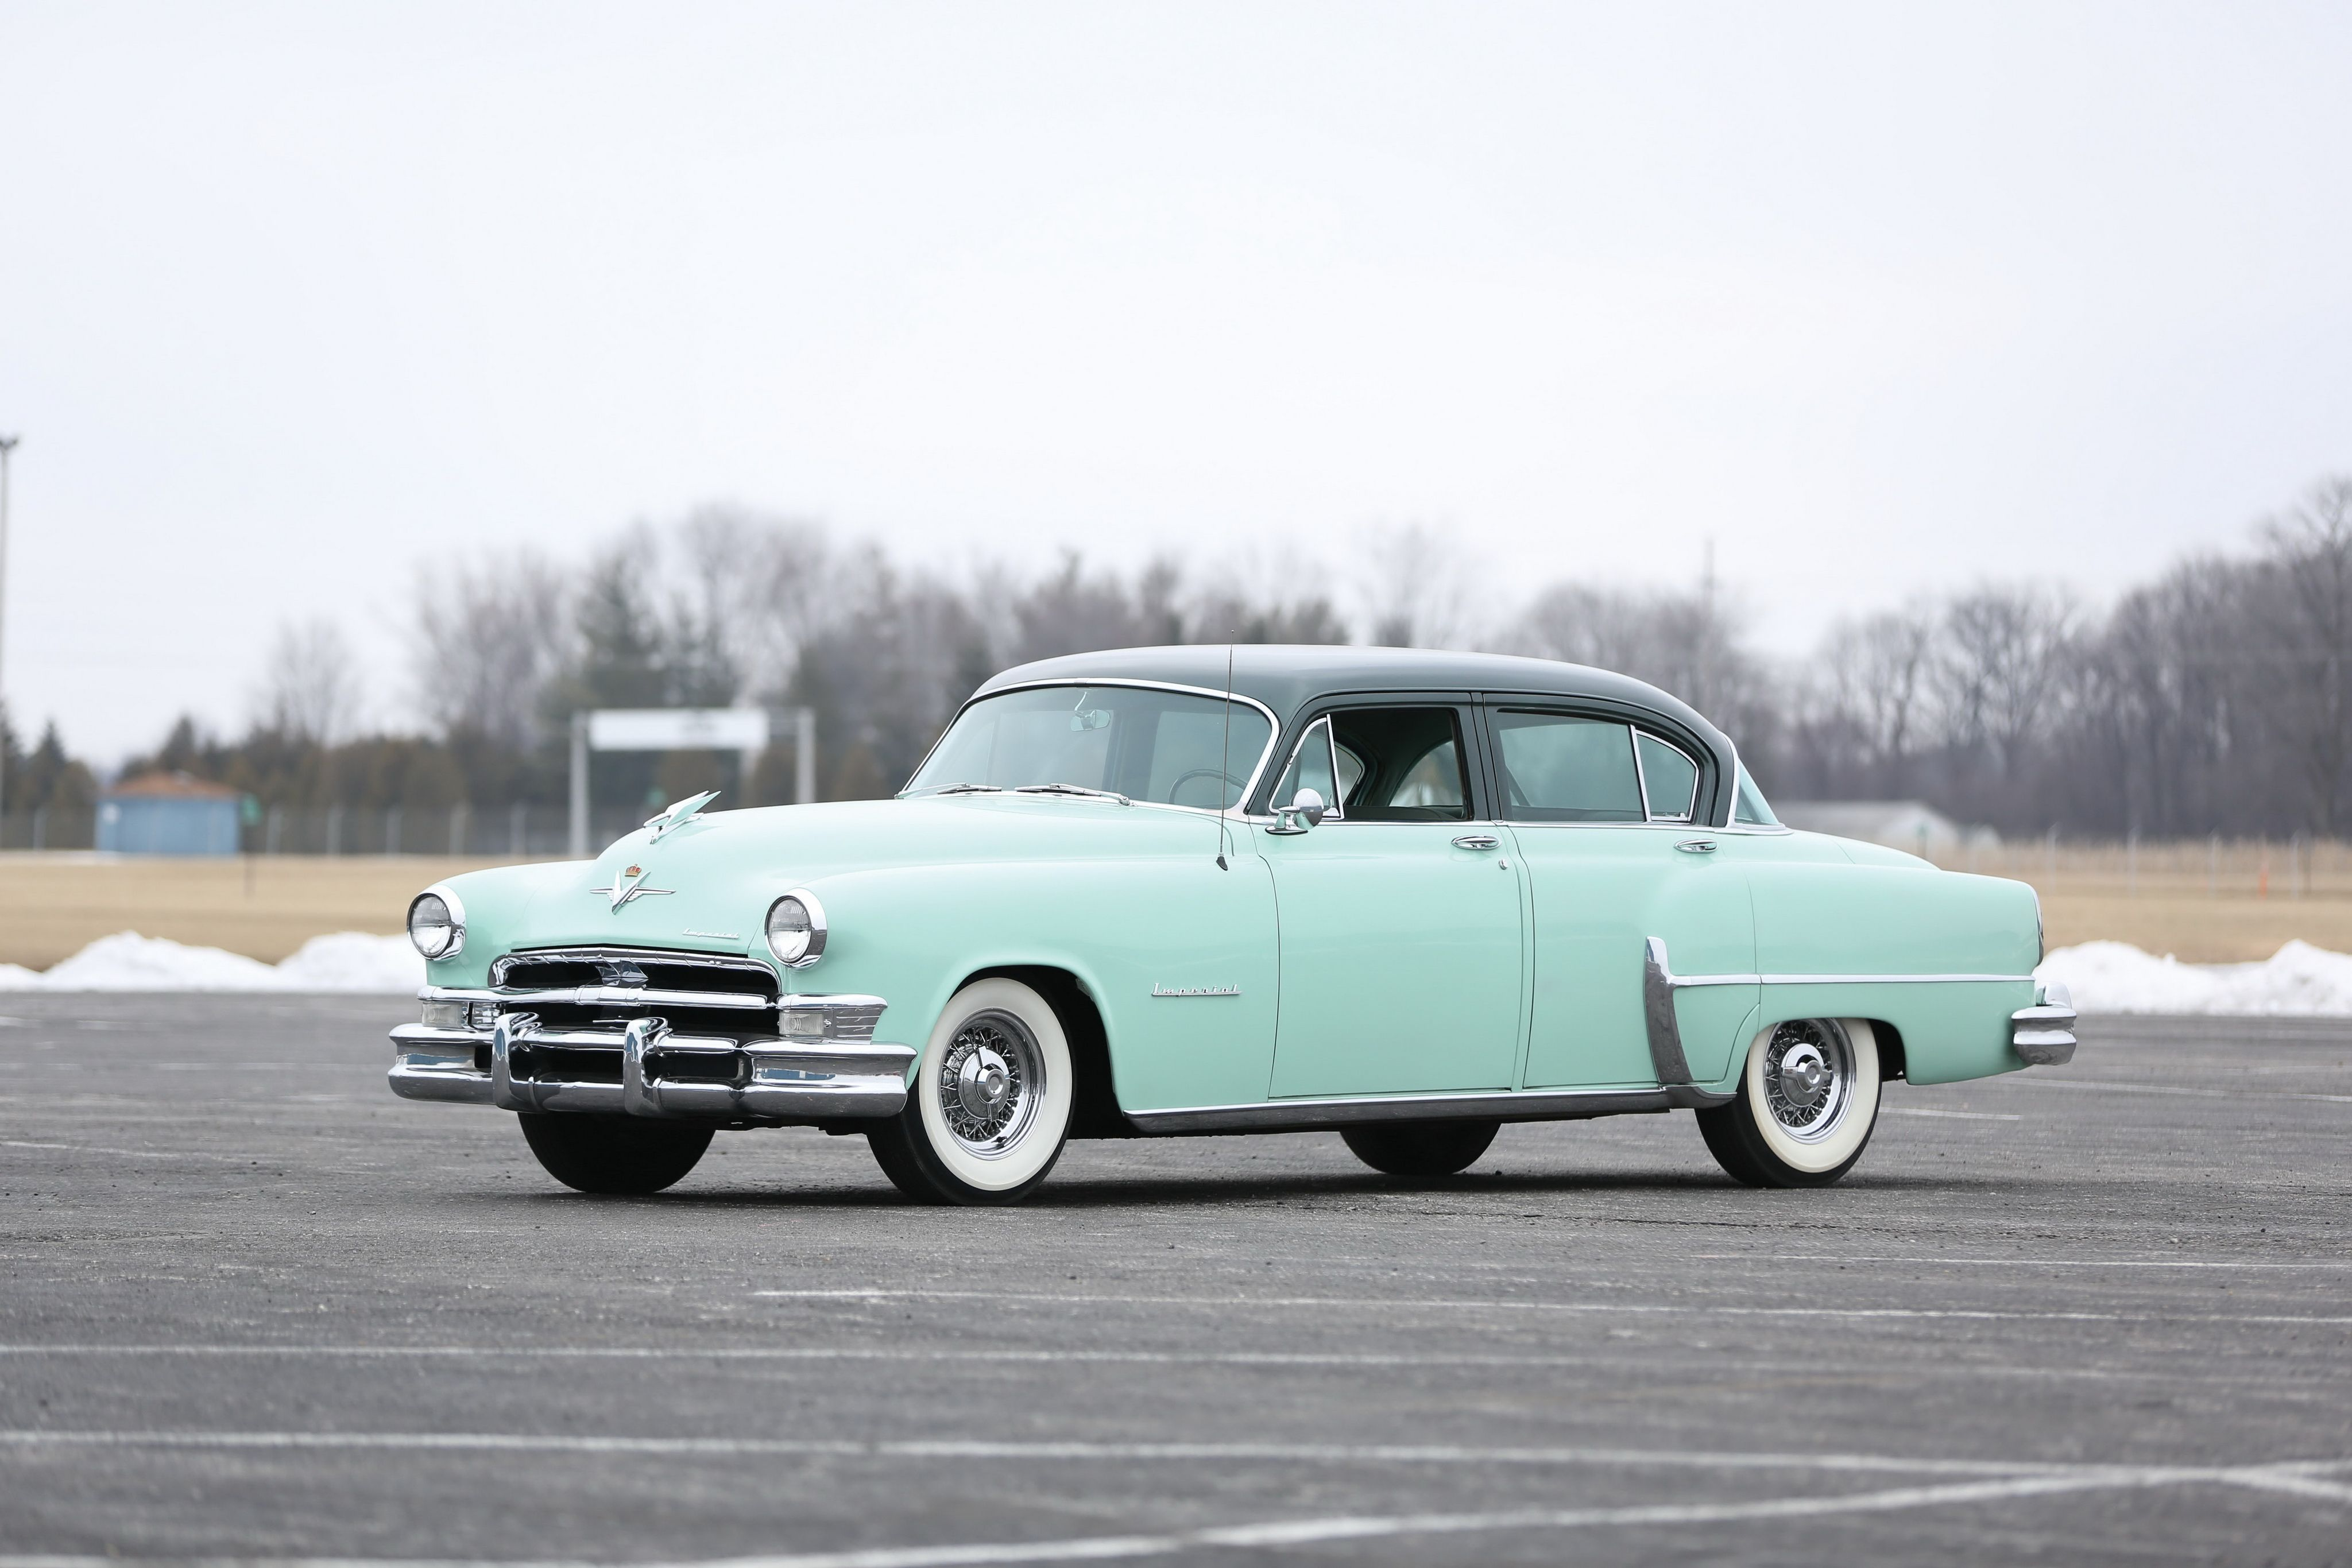 1953 Chrysler Custom Imperial 4-door Sedan (C-58) | Automobile ...